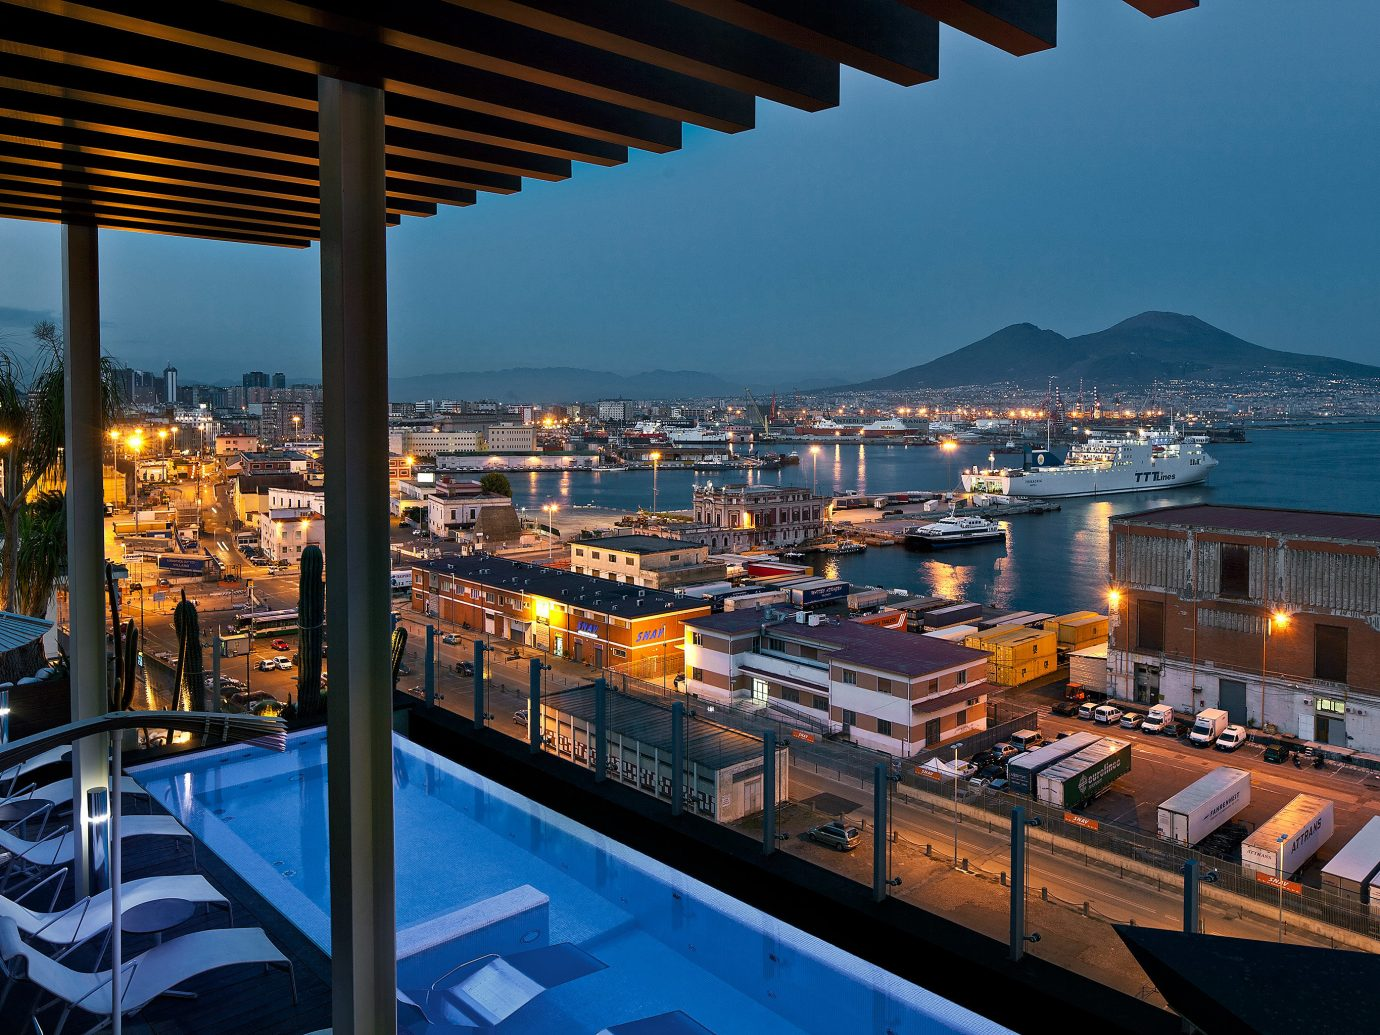 Adult-only Boutique Drink Hotels Lounge Modern Patio Pool Rooftop Waterfront sky outdoor marina dock evening Resort vehicle reflection cityscape overlooking